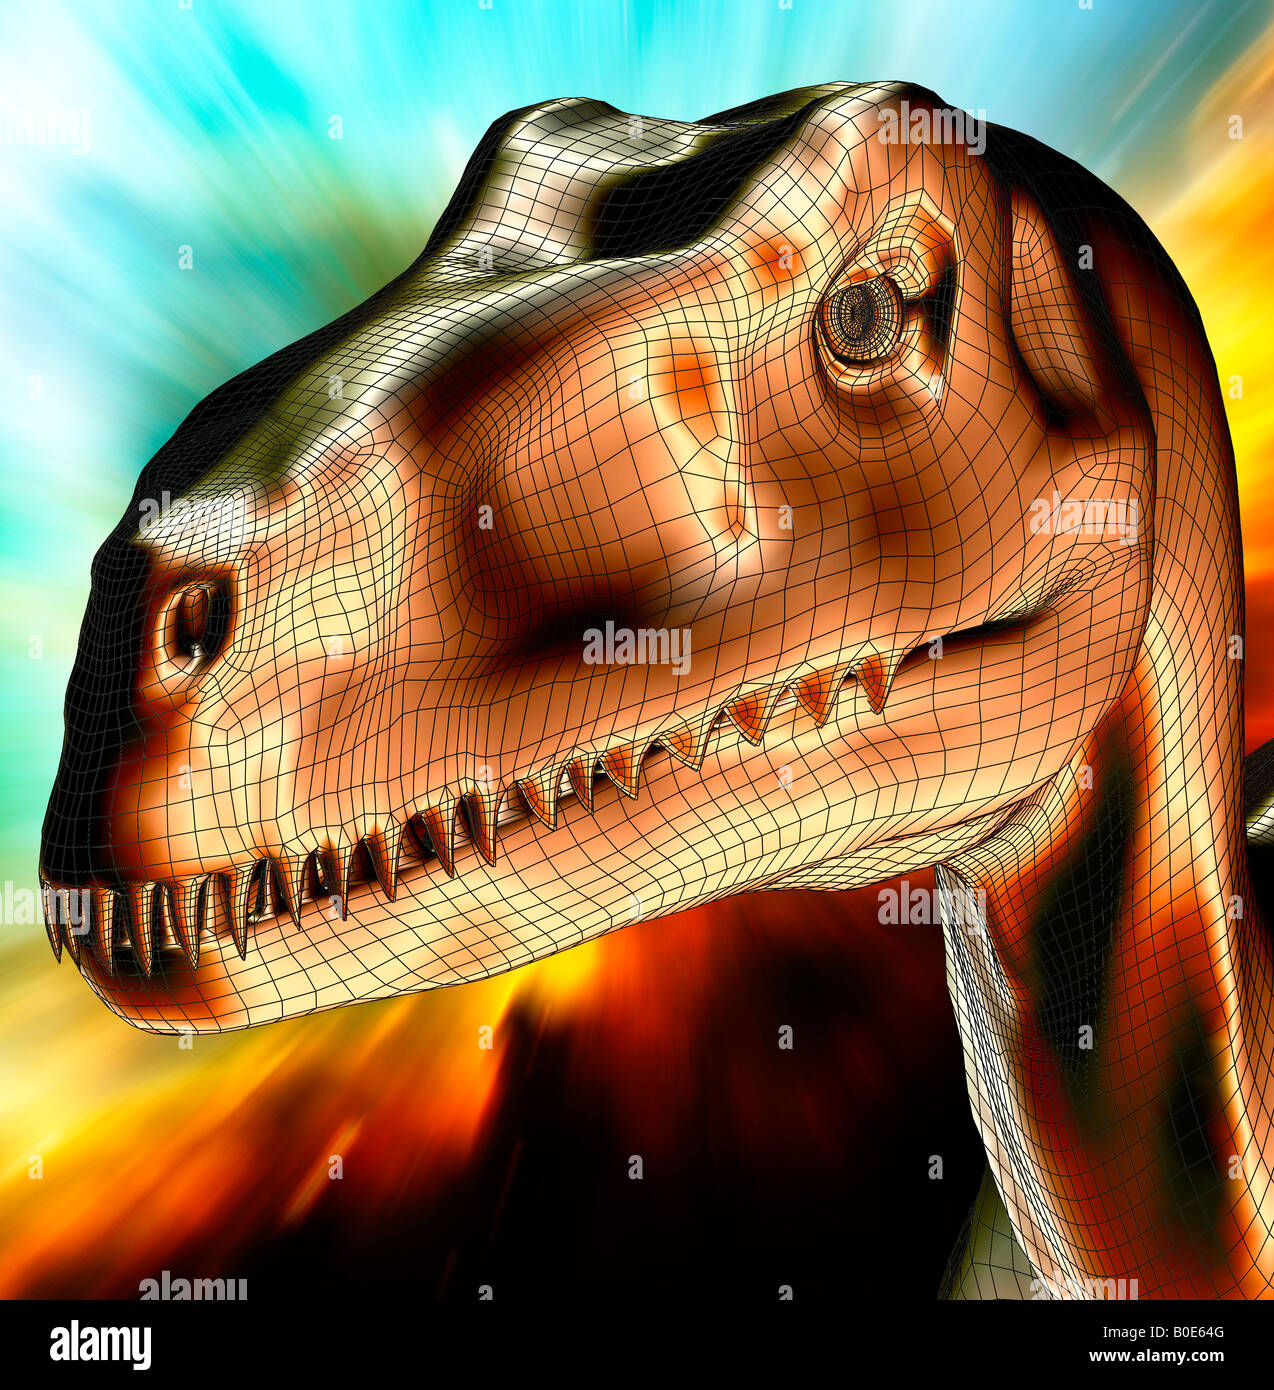 computer generated prehistoric dinosaur Deinonychus closeup of head galaxy background - Stock Image